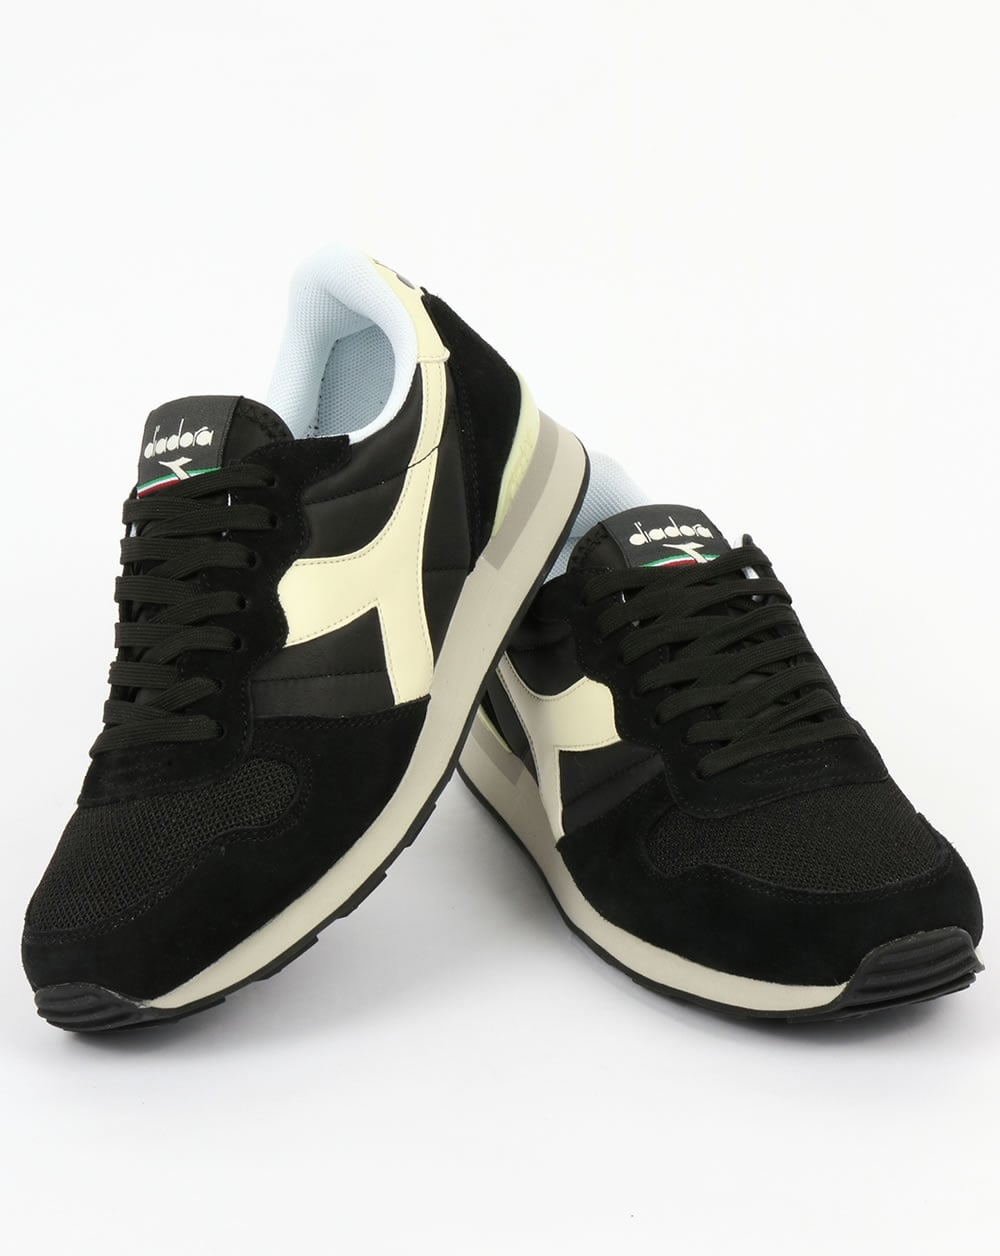 df75f6ad Diadora Camaro Trainers Black/Whisper White